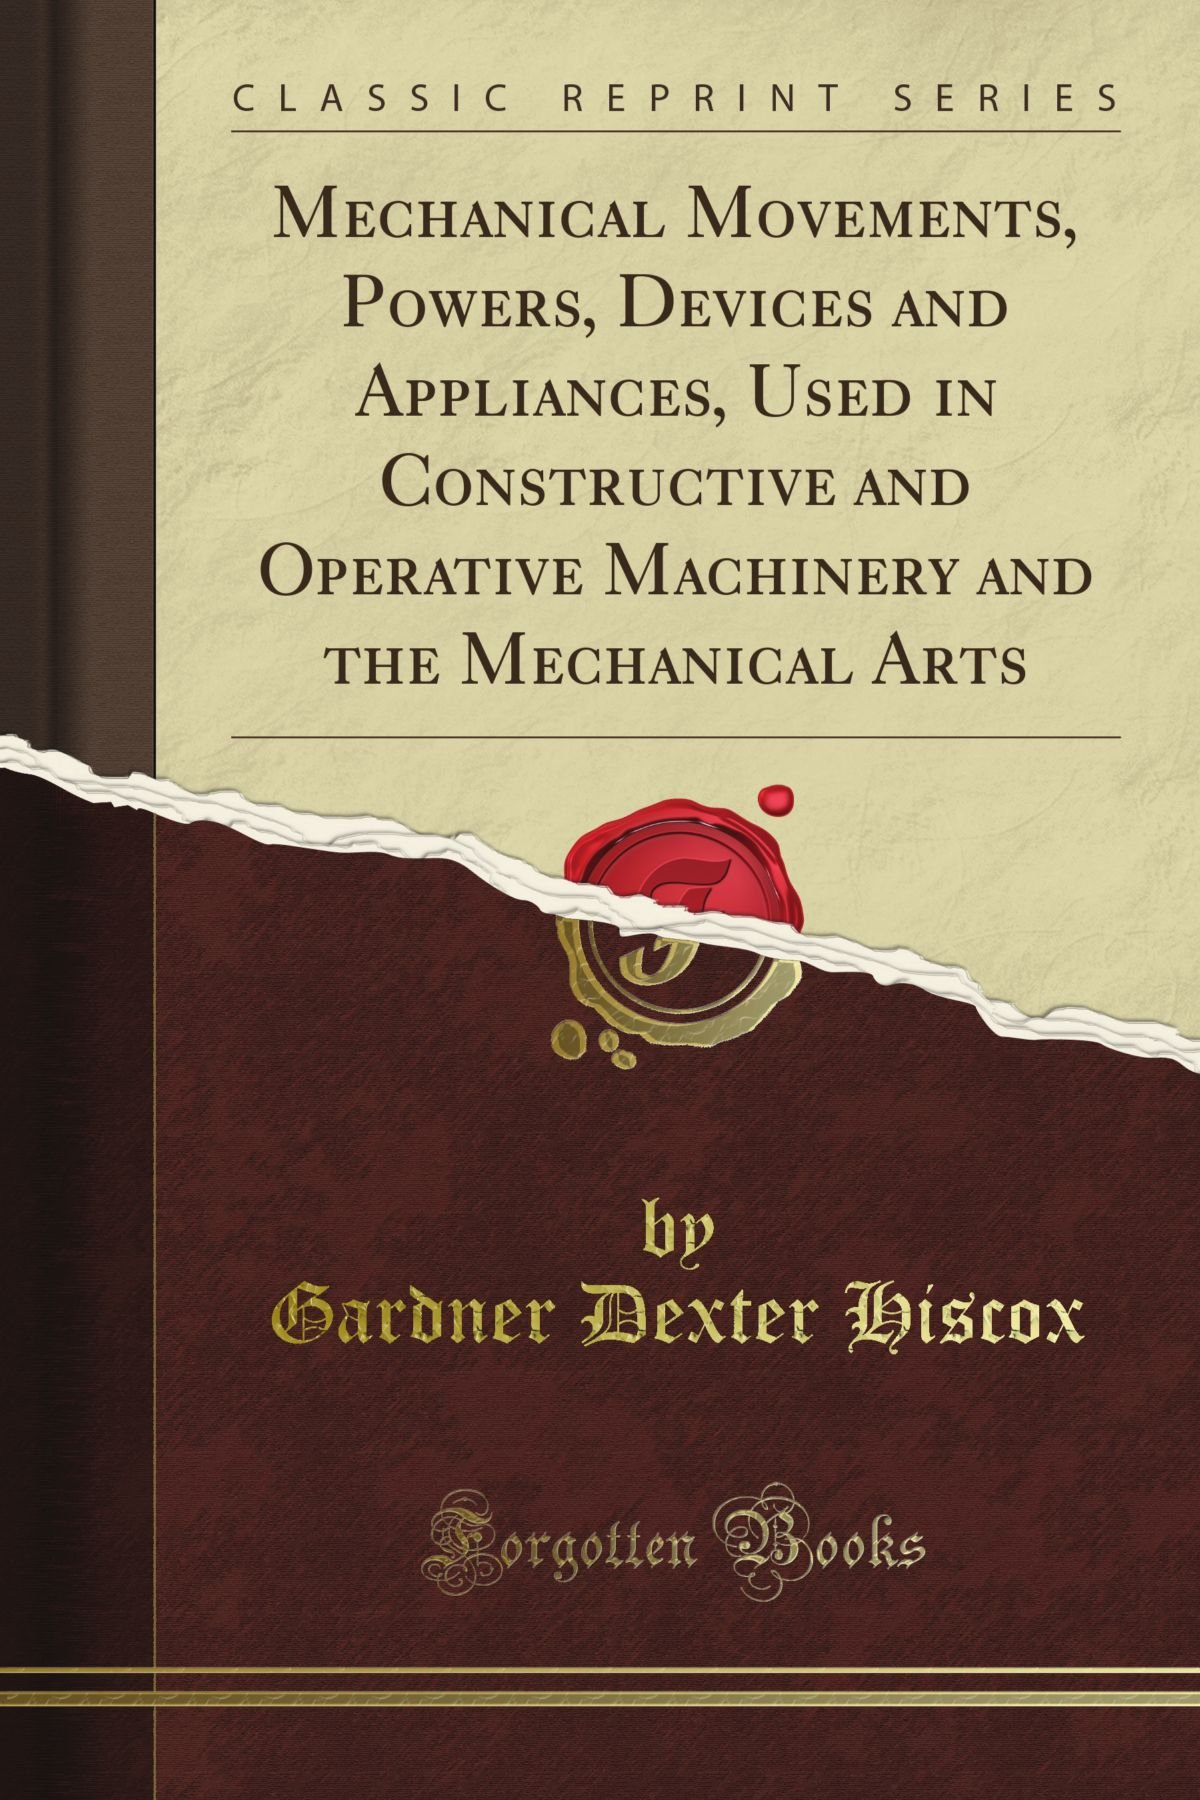 Download Mechanical Movements, Powers, Devices and Appliances, Used in Constructive and Operative Machinery and the Mechanical Arts (Classic Reprint) PDF